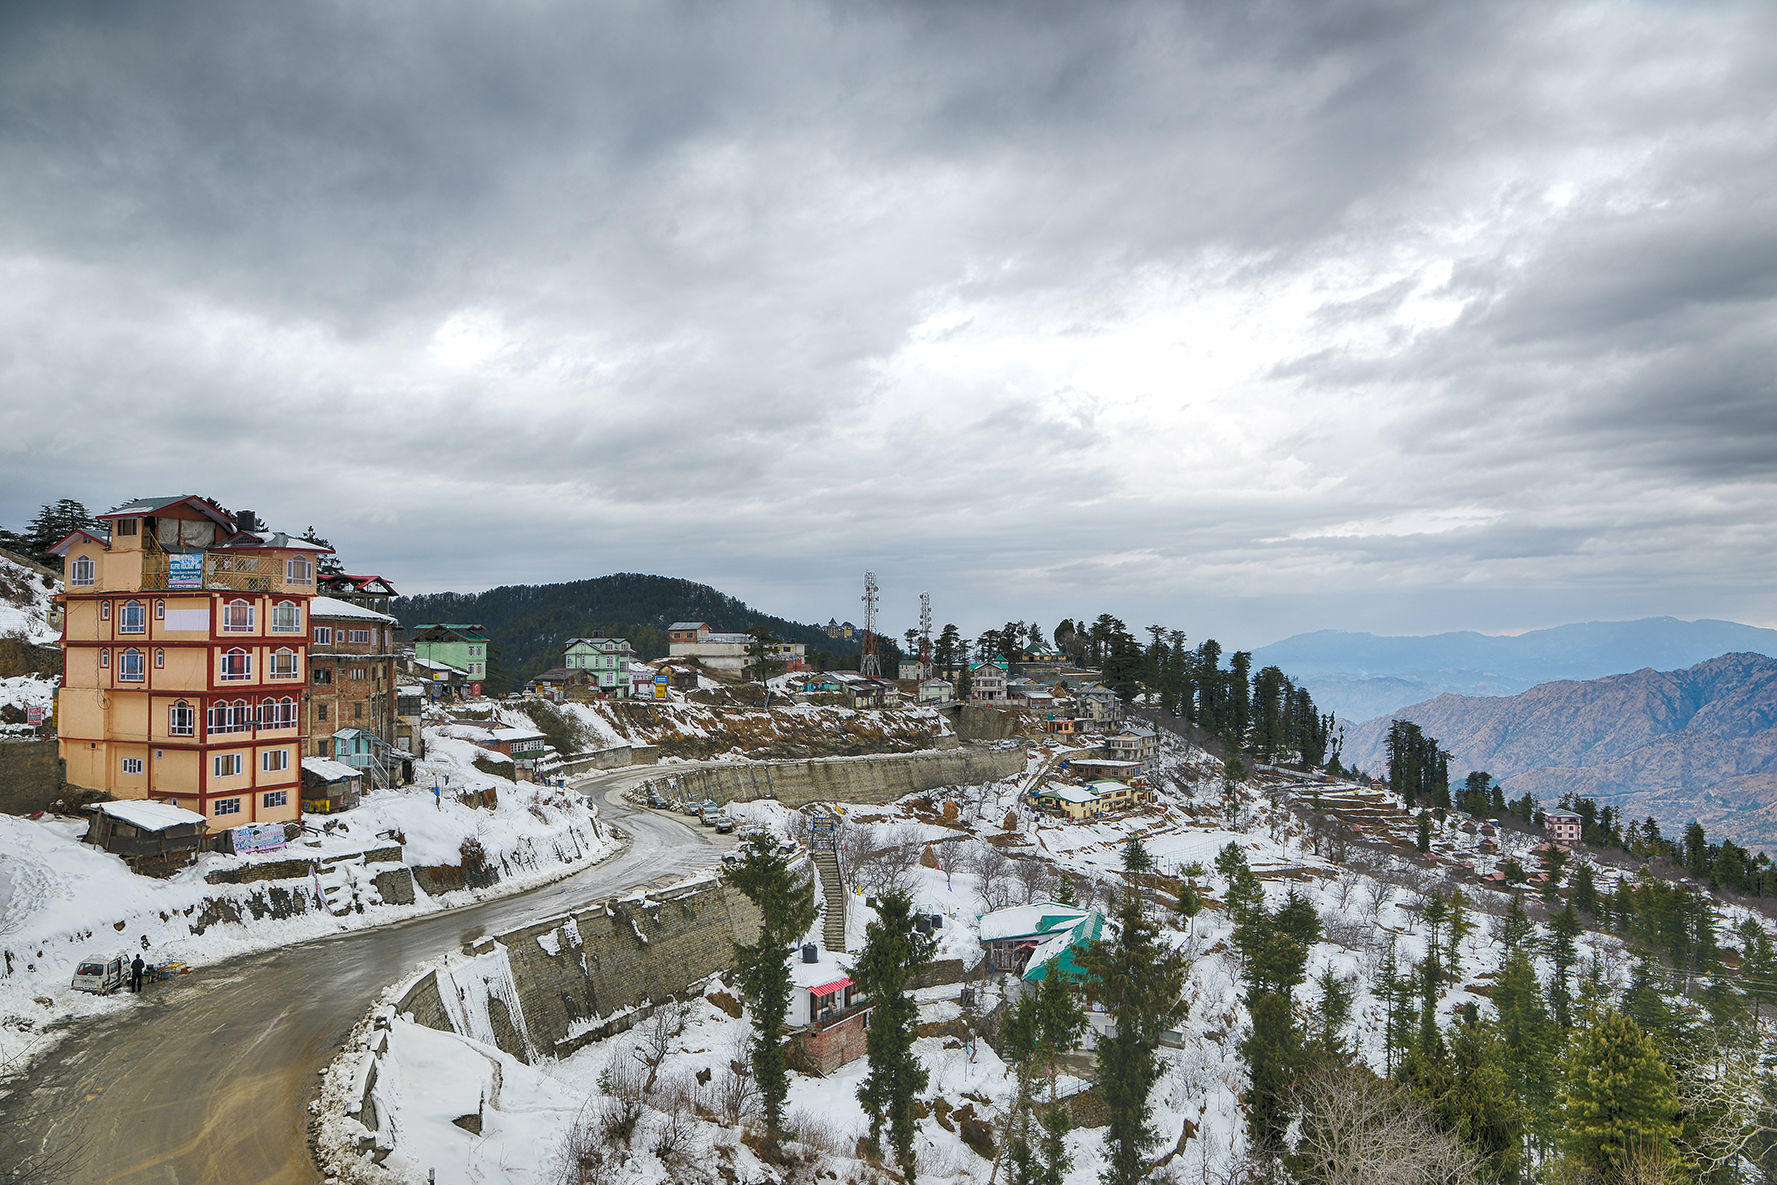 Dalhousie weather hit sub-zero, as does most of Himachal after heavy snowfall